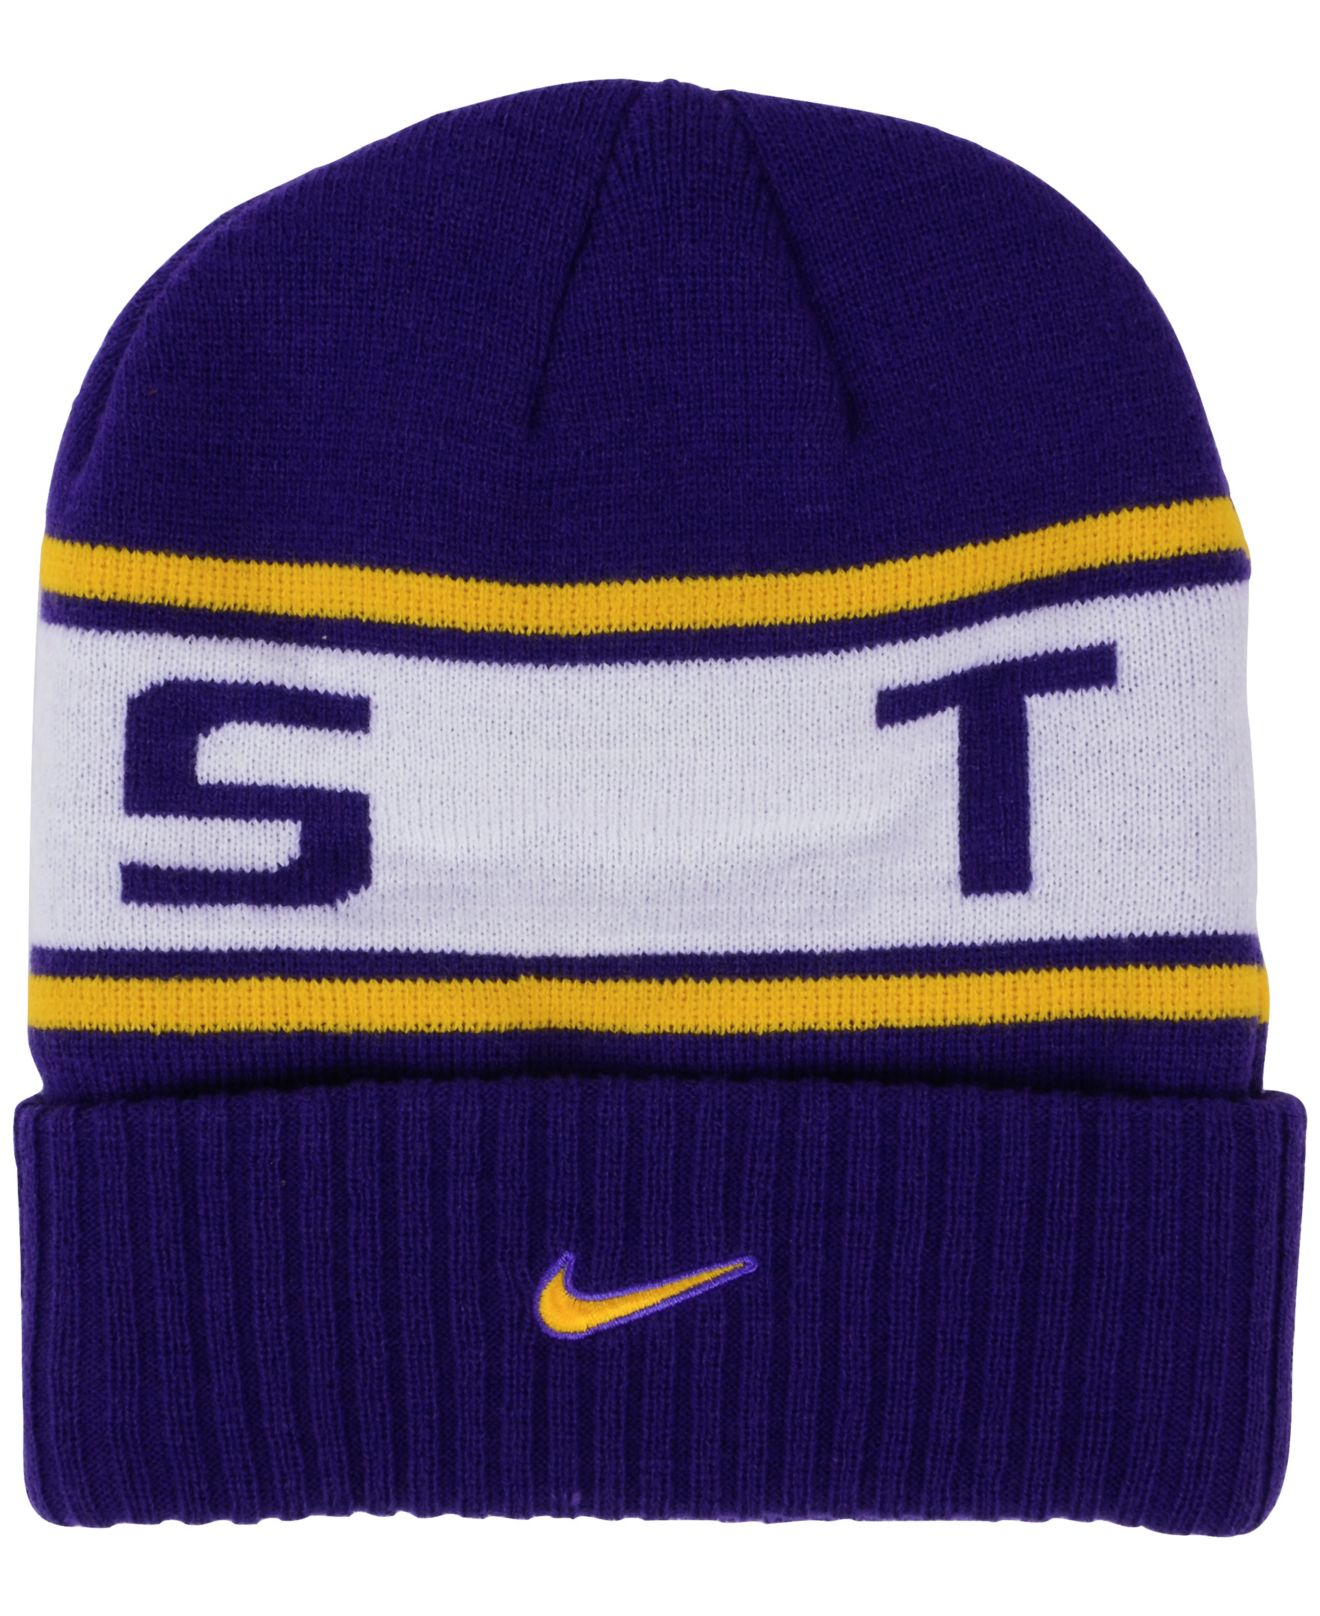 new concept 1f36e f6544 ... hot lyst nike lsu tigers sideline knit hat in blue for men 99cc2 64320